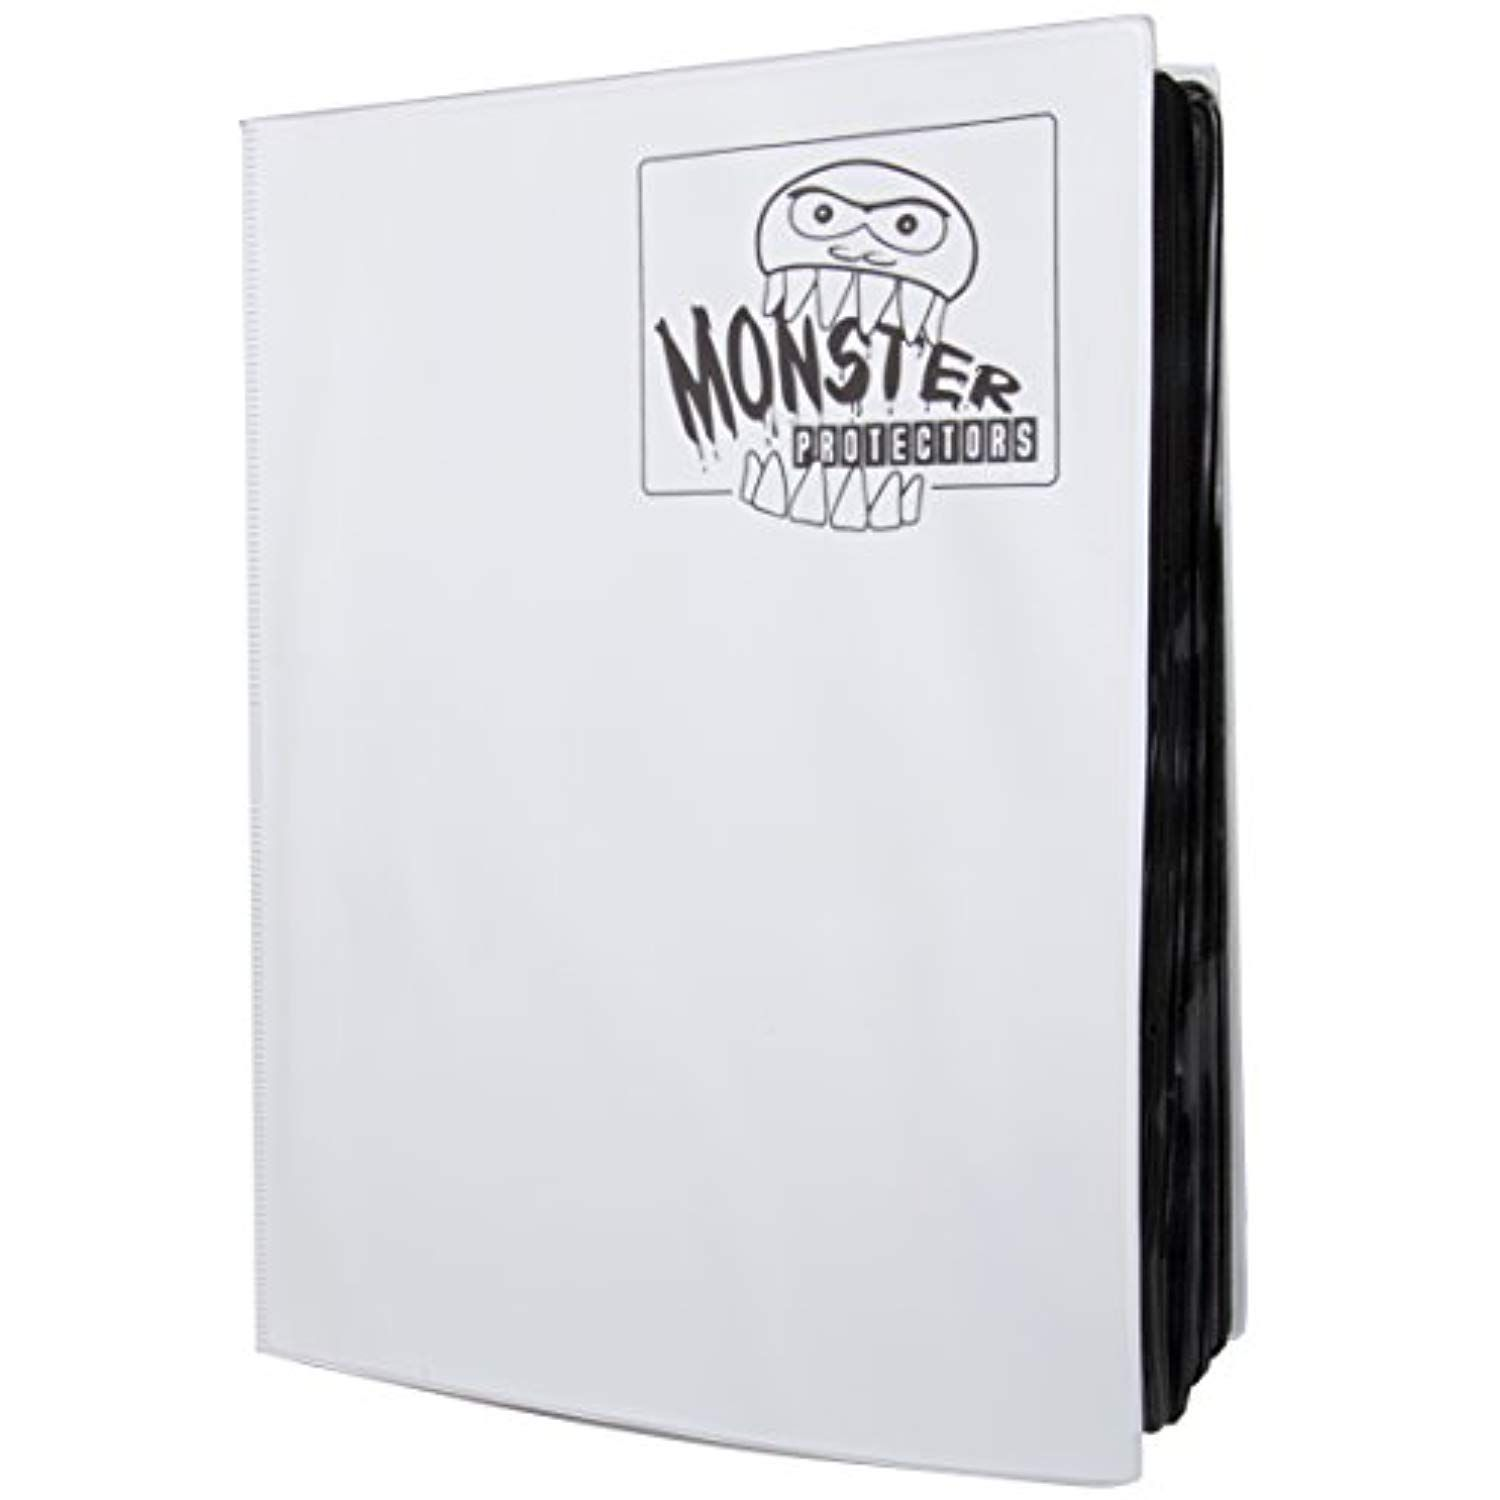 Mega Monster Binder XL Size (Twice As Large)- Holds 720